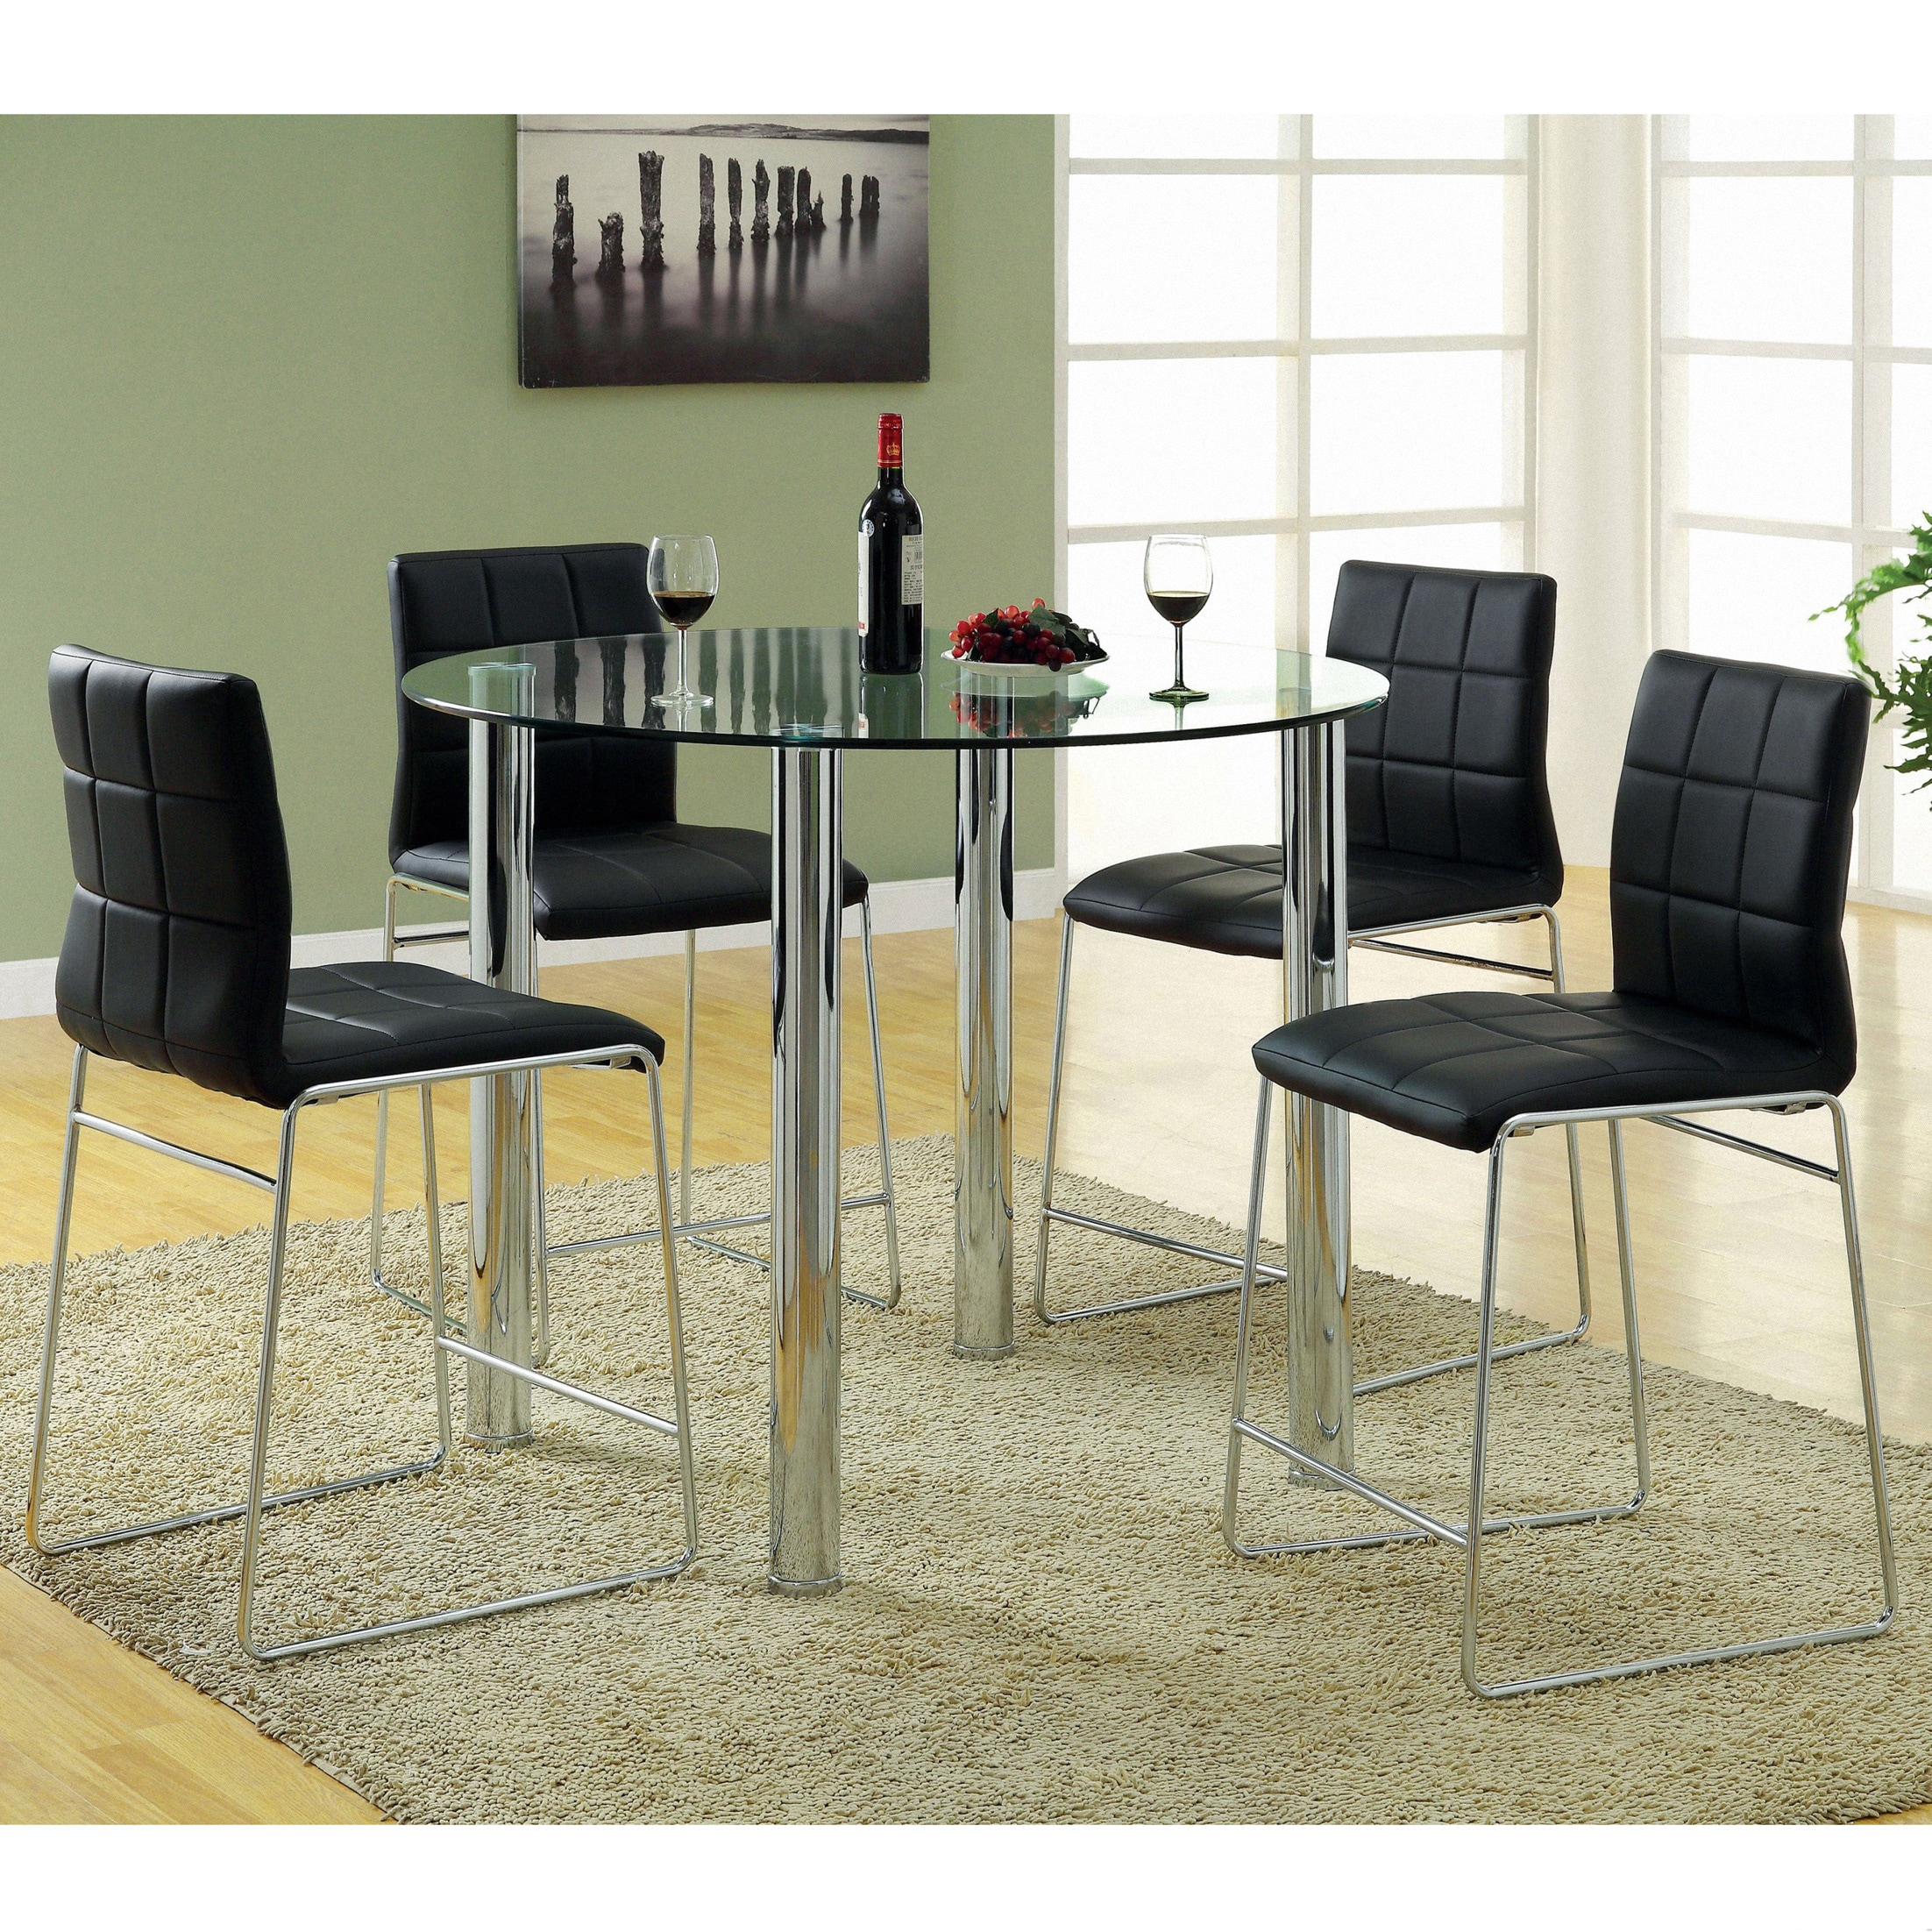 Furniture of America Donnabella 5 piece High gloss Counter